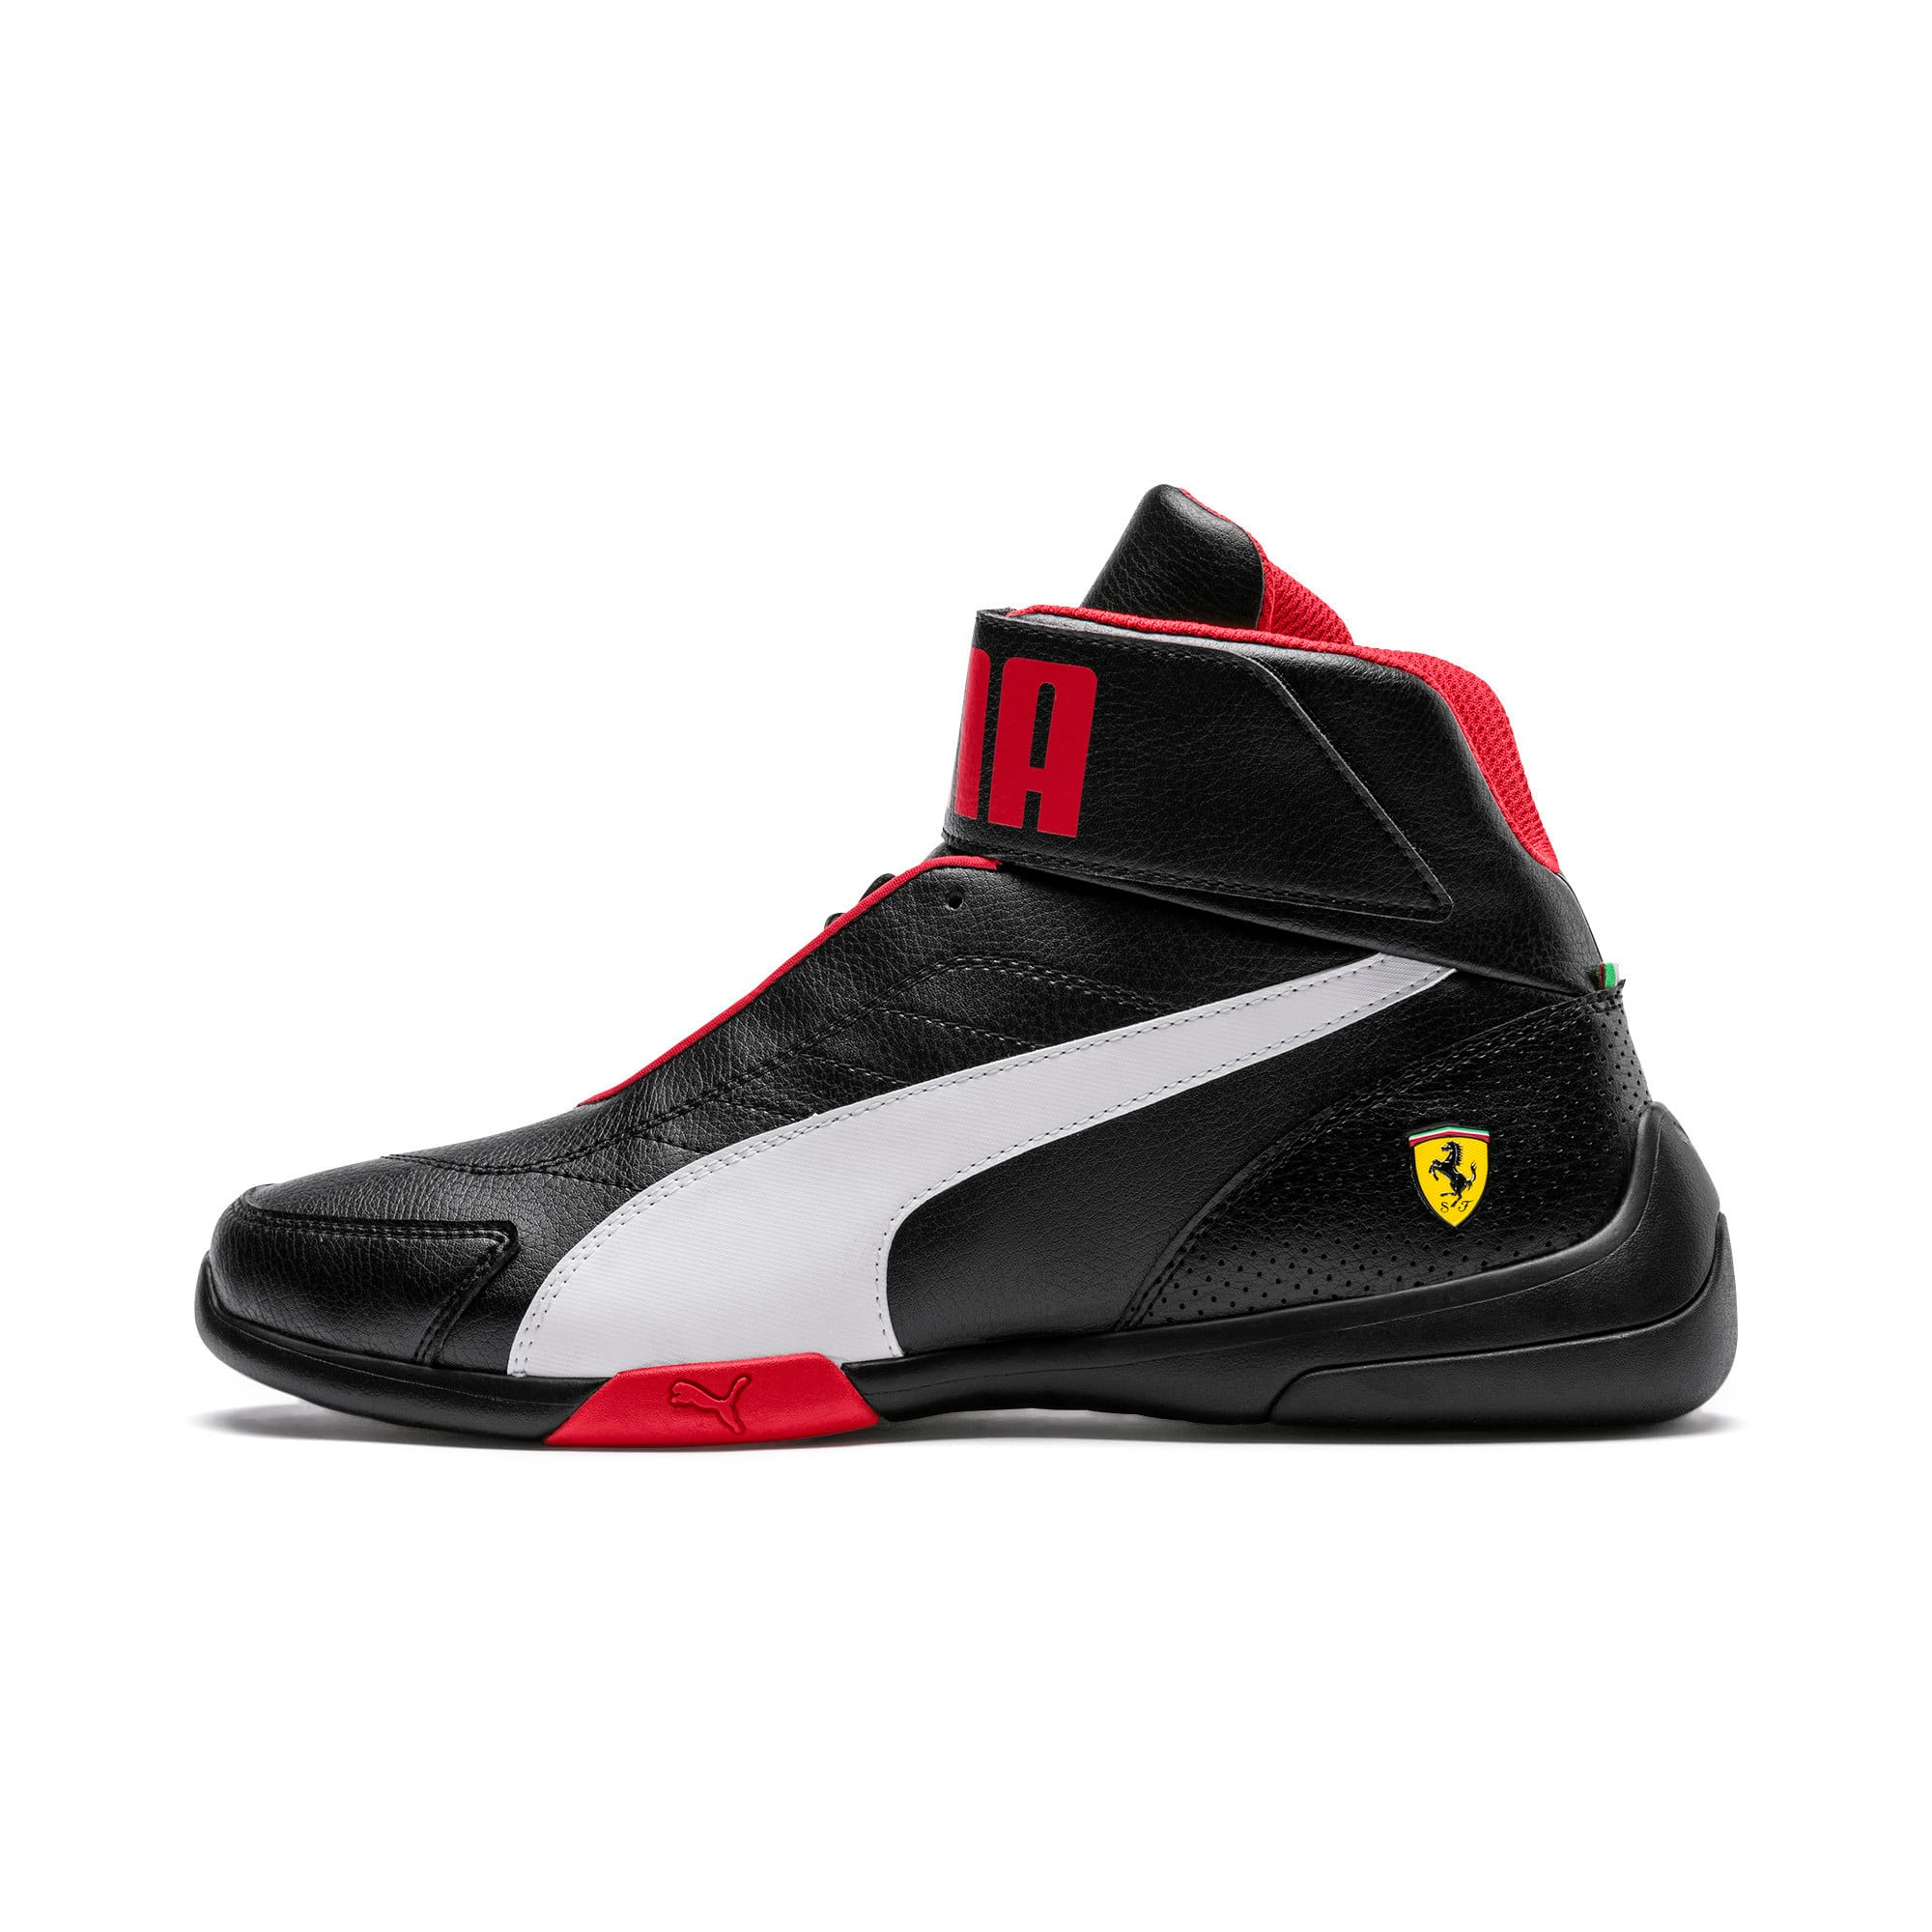 Thumbnail 1 of Scuderia Ferrari Kart Cat Mid III Hi Top Shoes, Puma Black-Puma White, medium